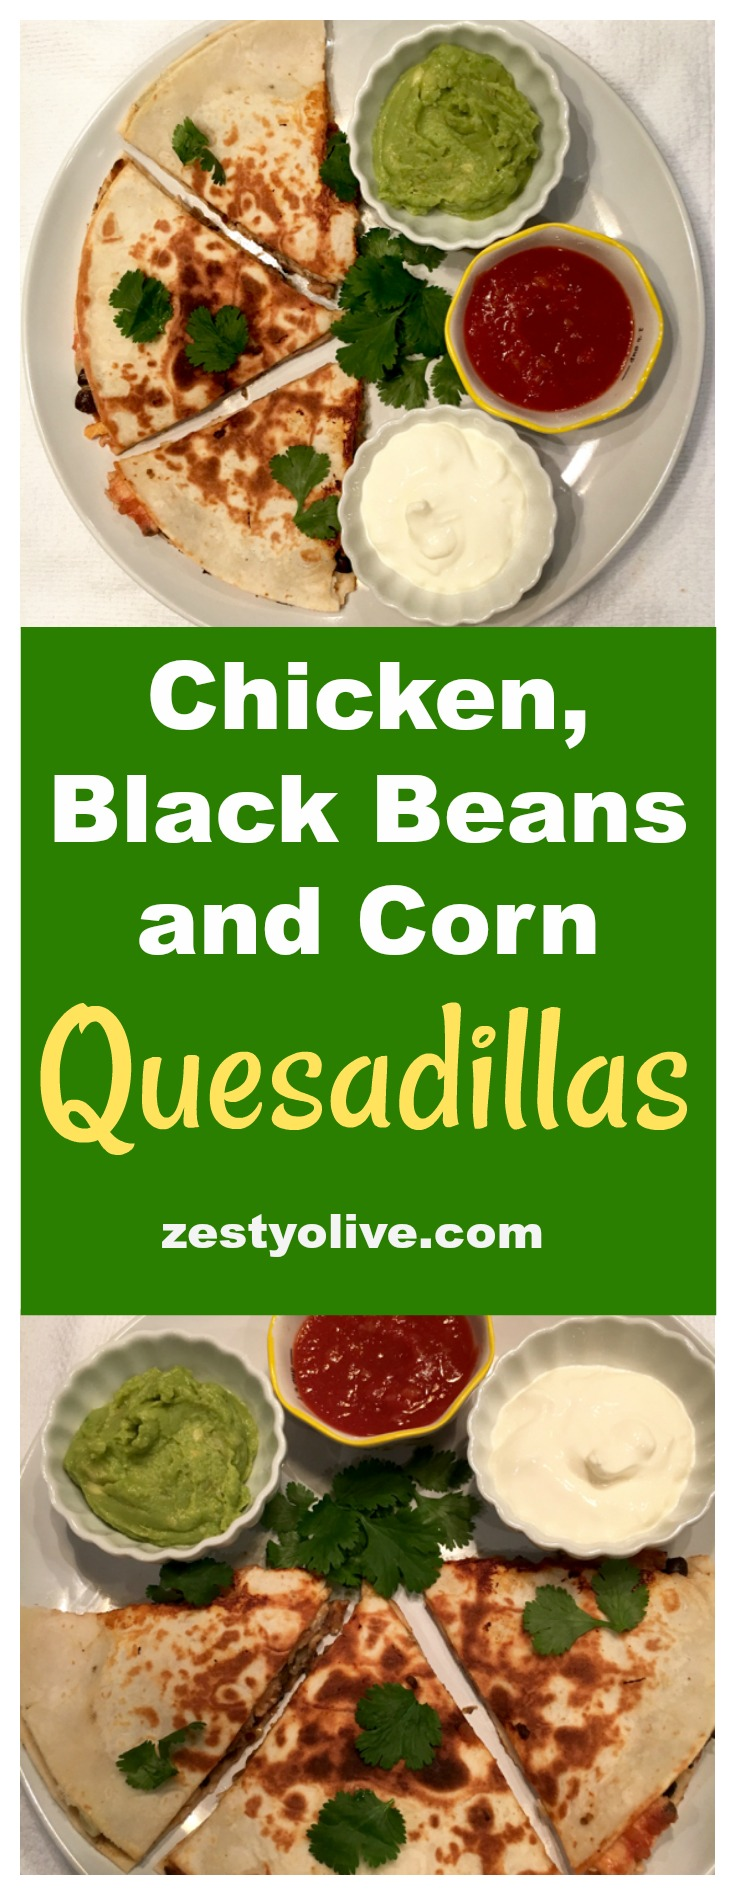 Easy, cheesy, Chicken, Black Bean and Corn Quesadillas are a tasty and quick meal that your kids and family will love!